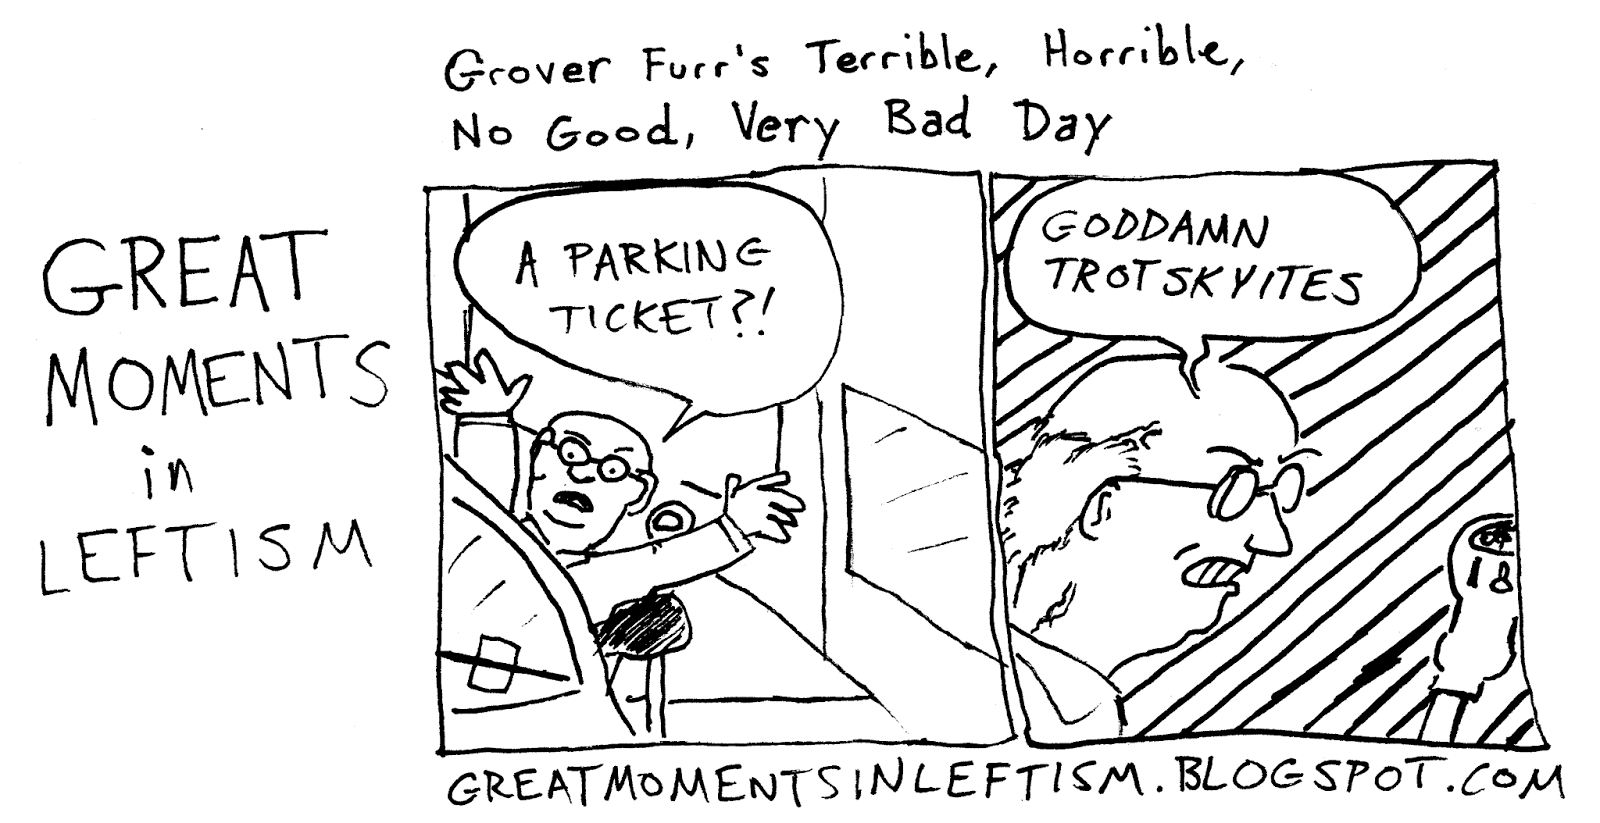 Great Moments in Leftism: Grover Furr's Terrible, Horrible